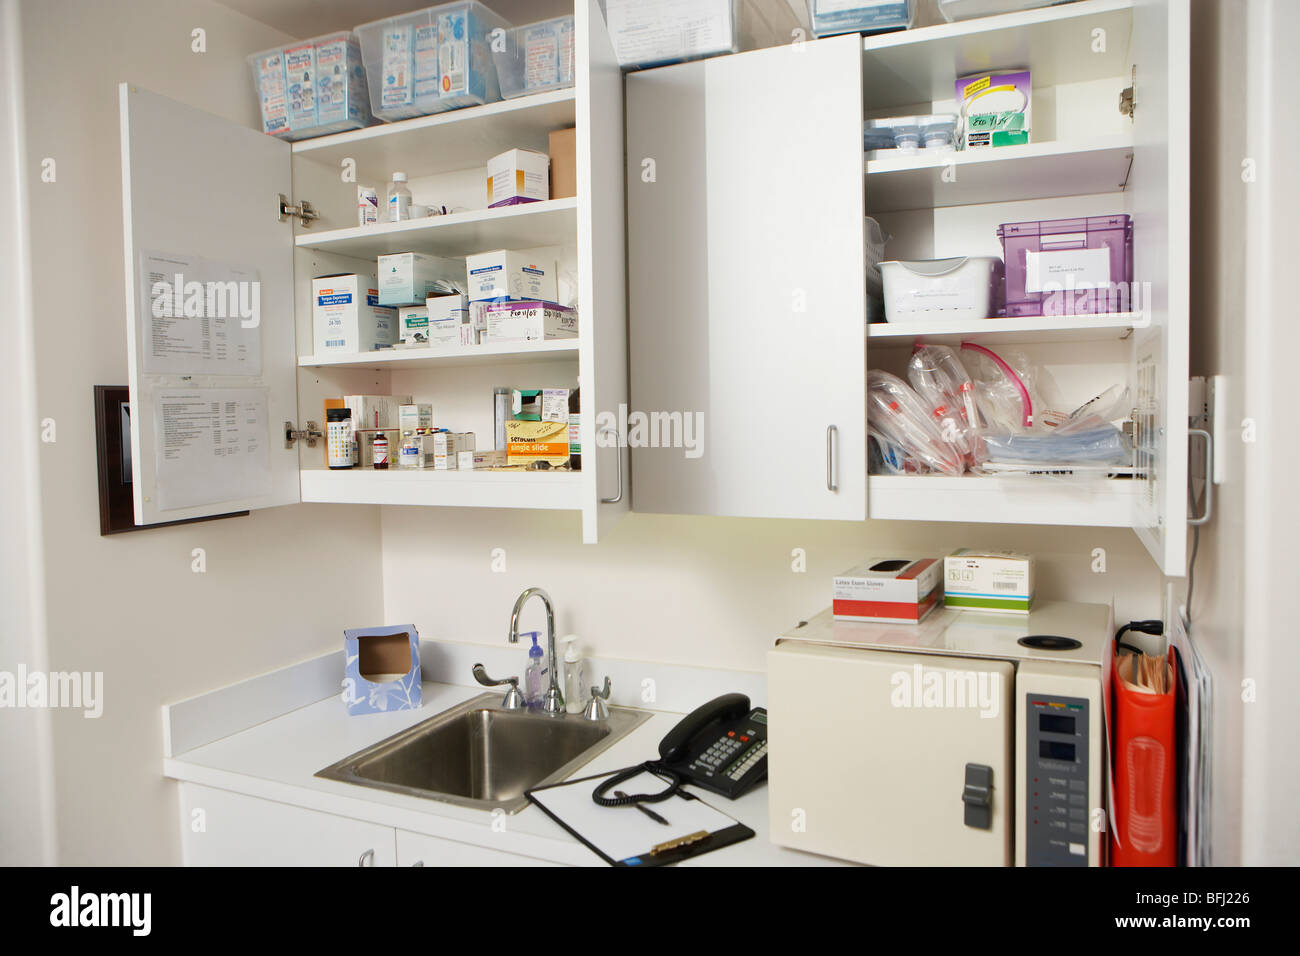 medical cabinets in hospital stock photo royalty free image  - medical cabinets in hospital